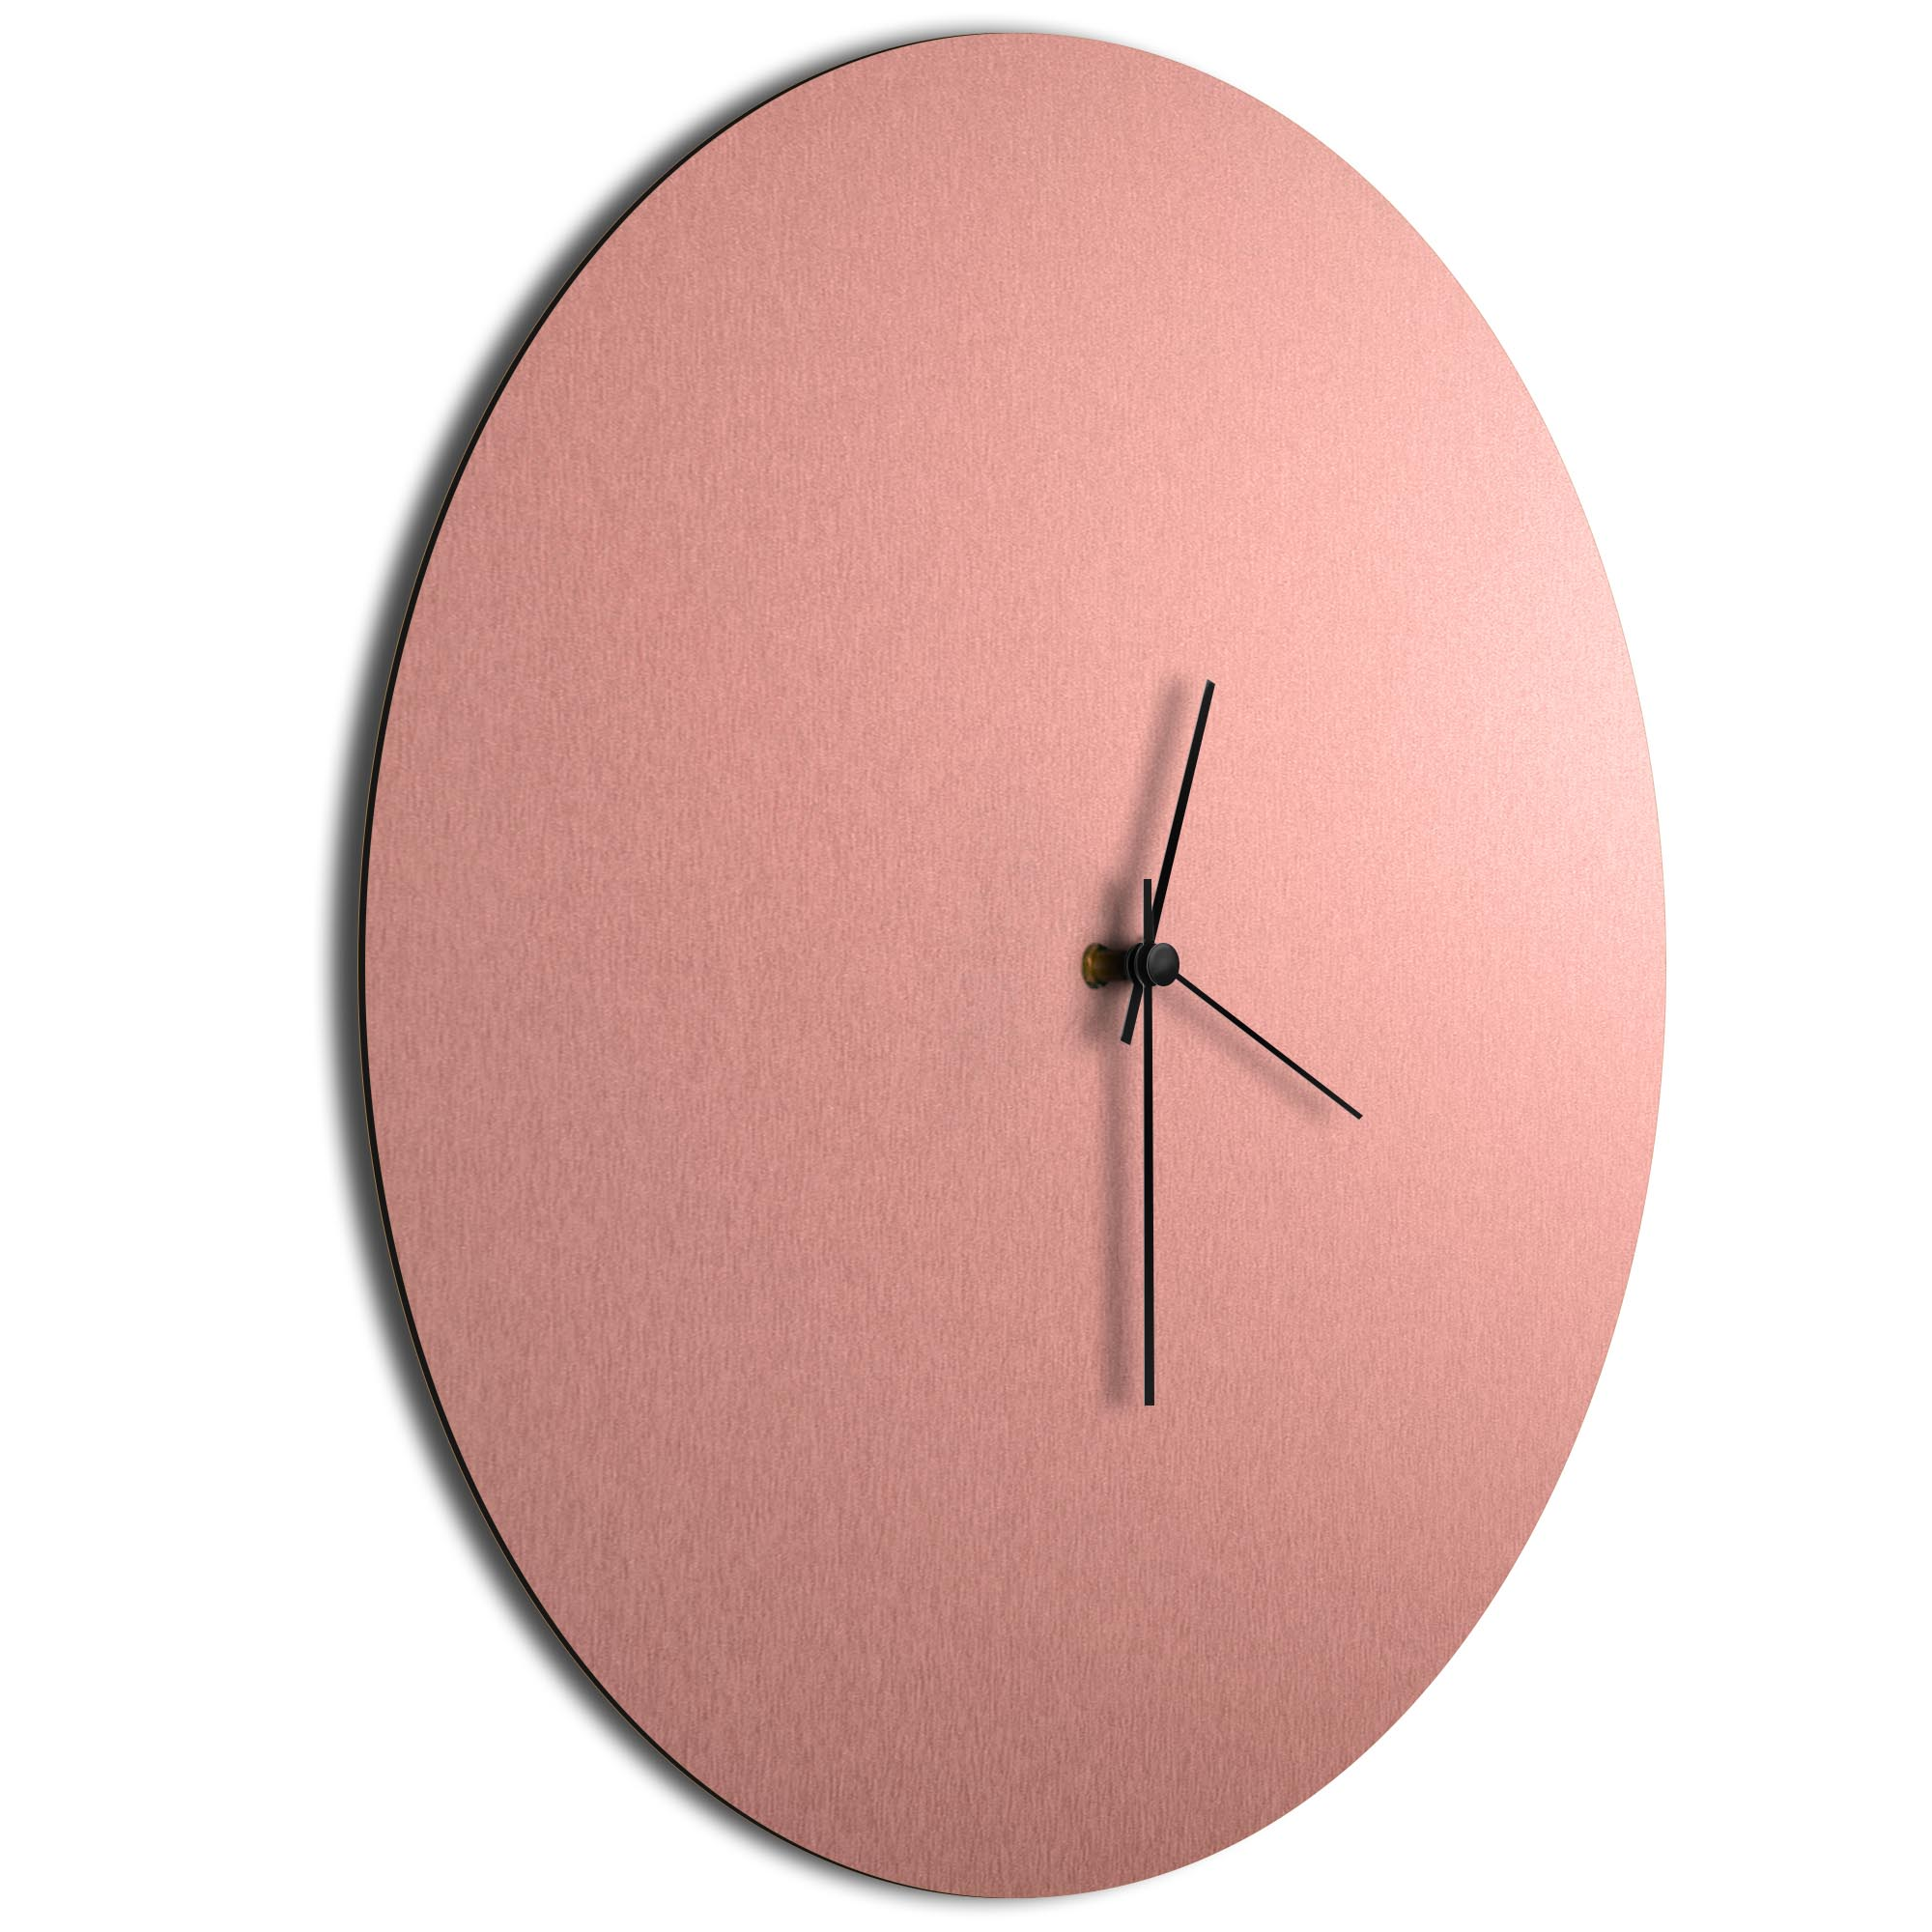 Coppersmith Circle Clock Black - Image 2